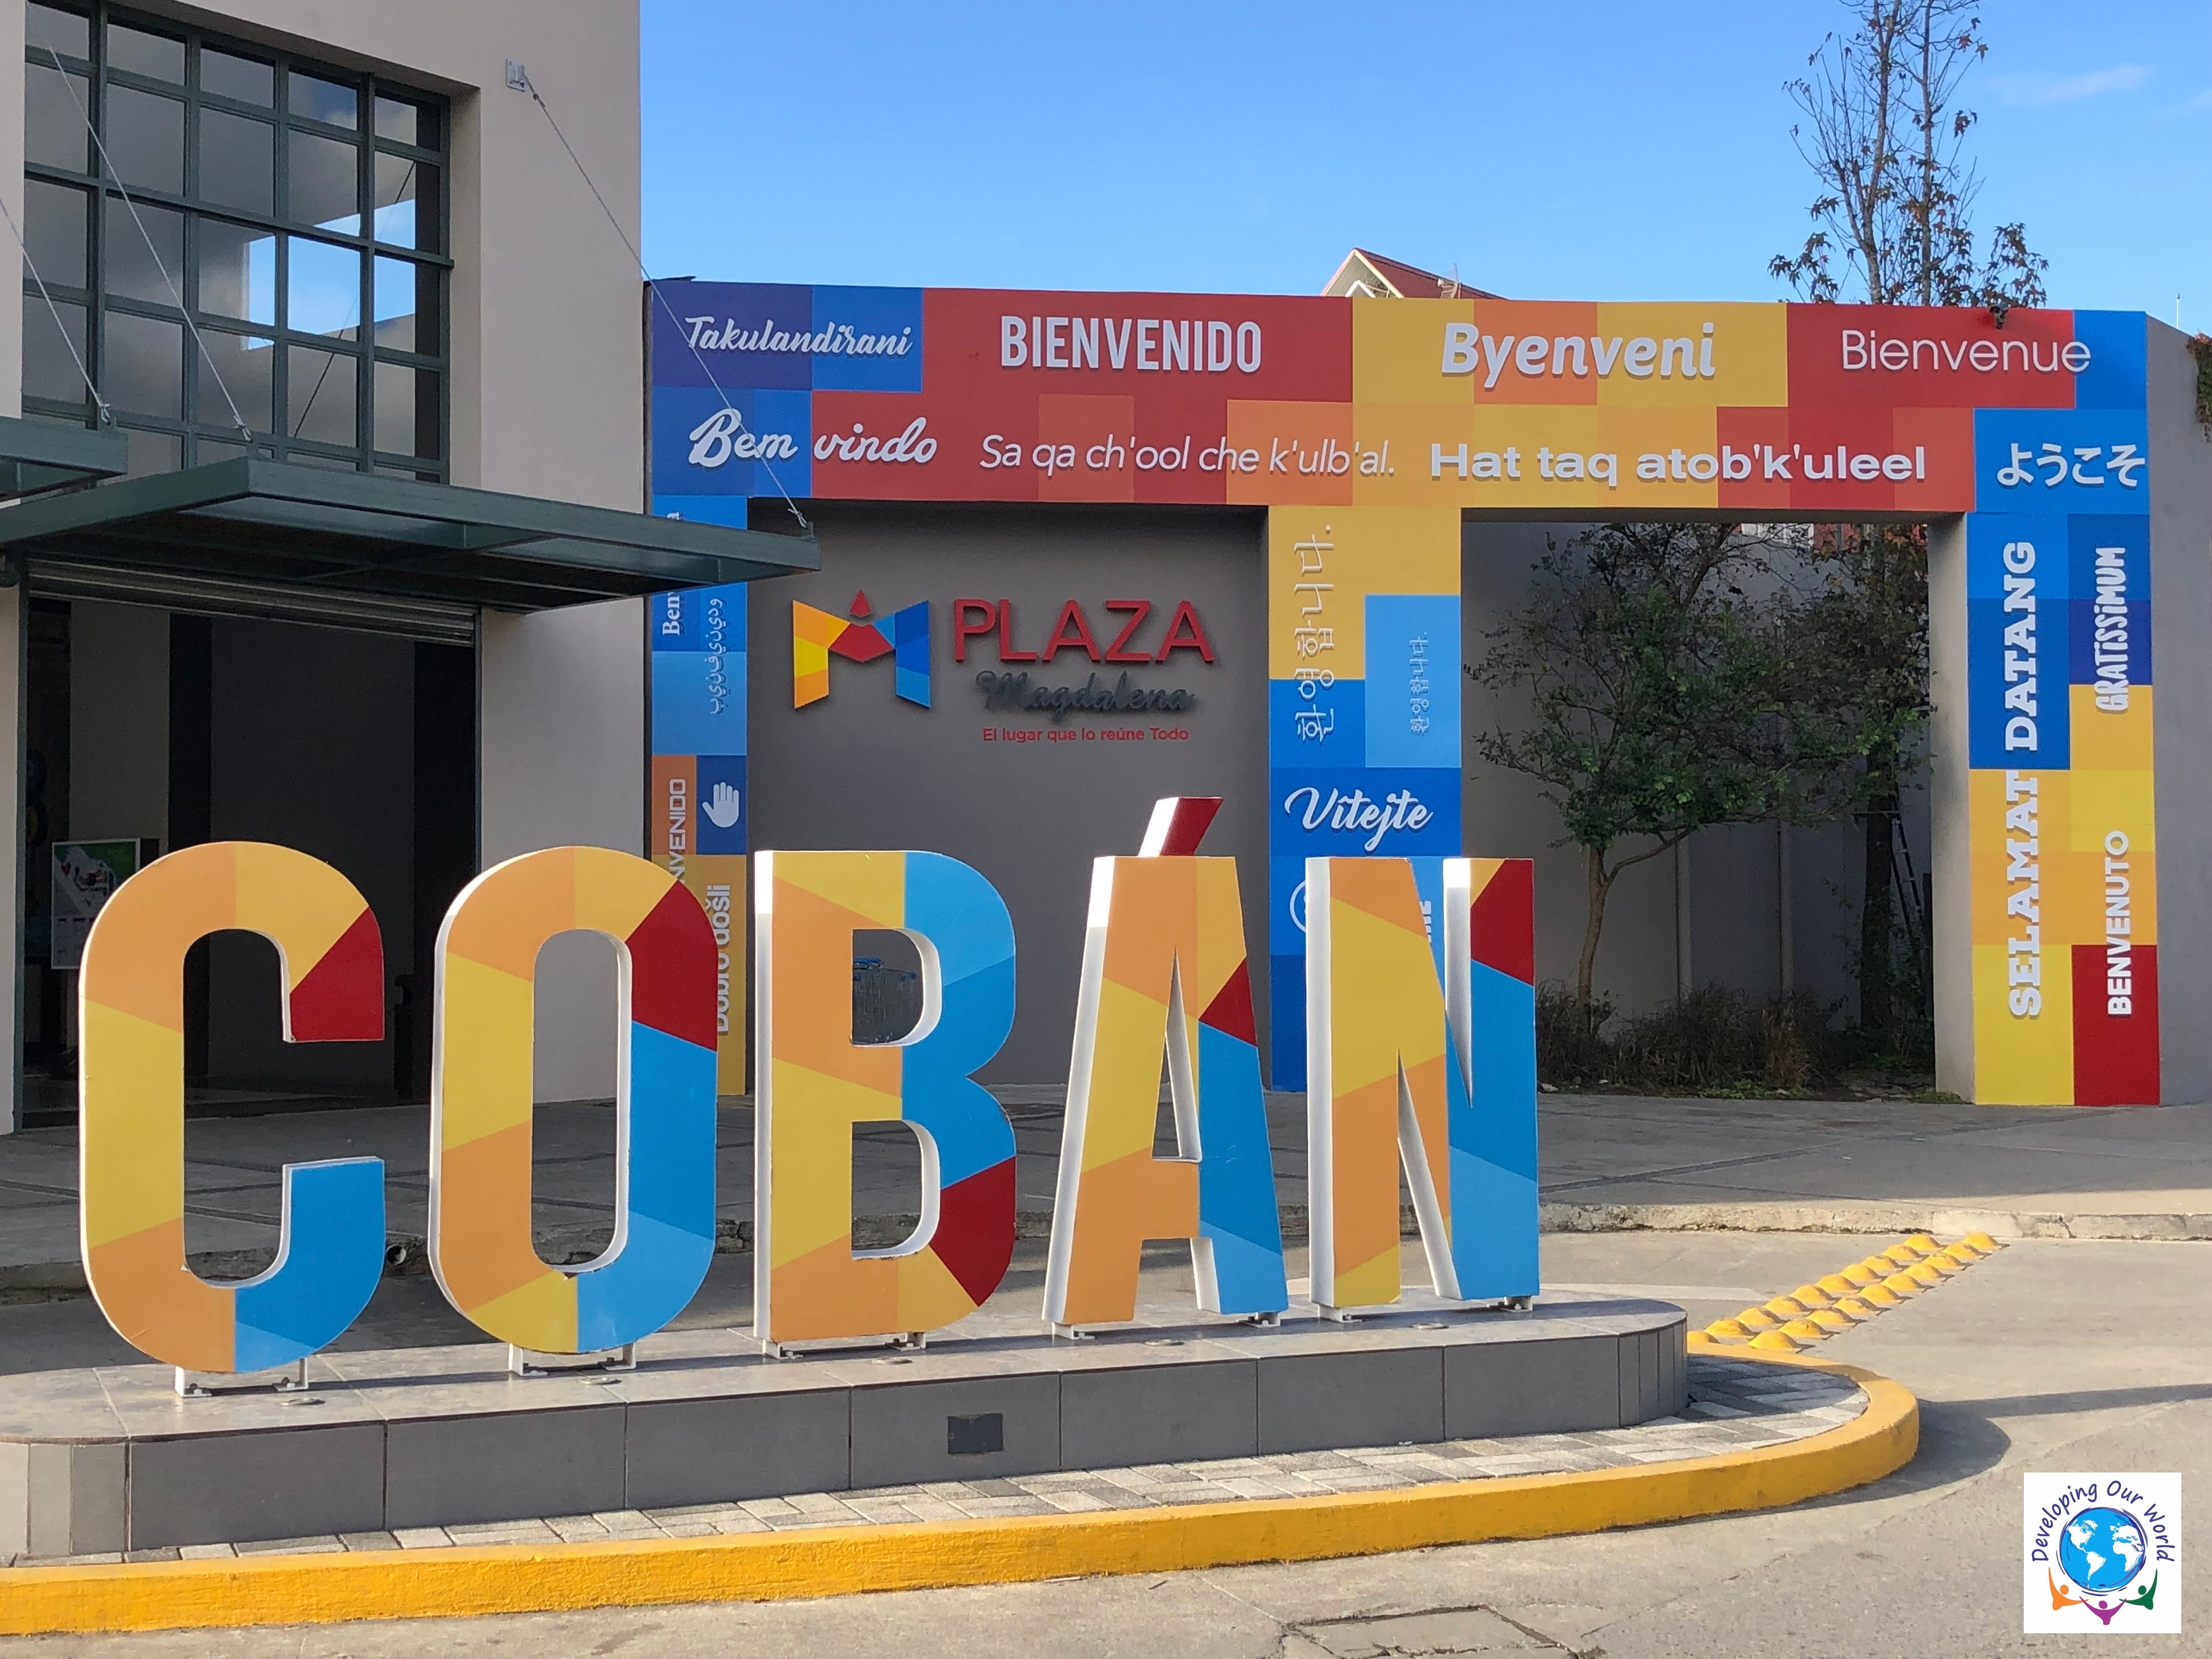 The Coban sign